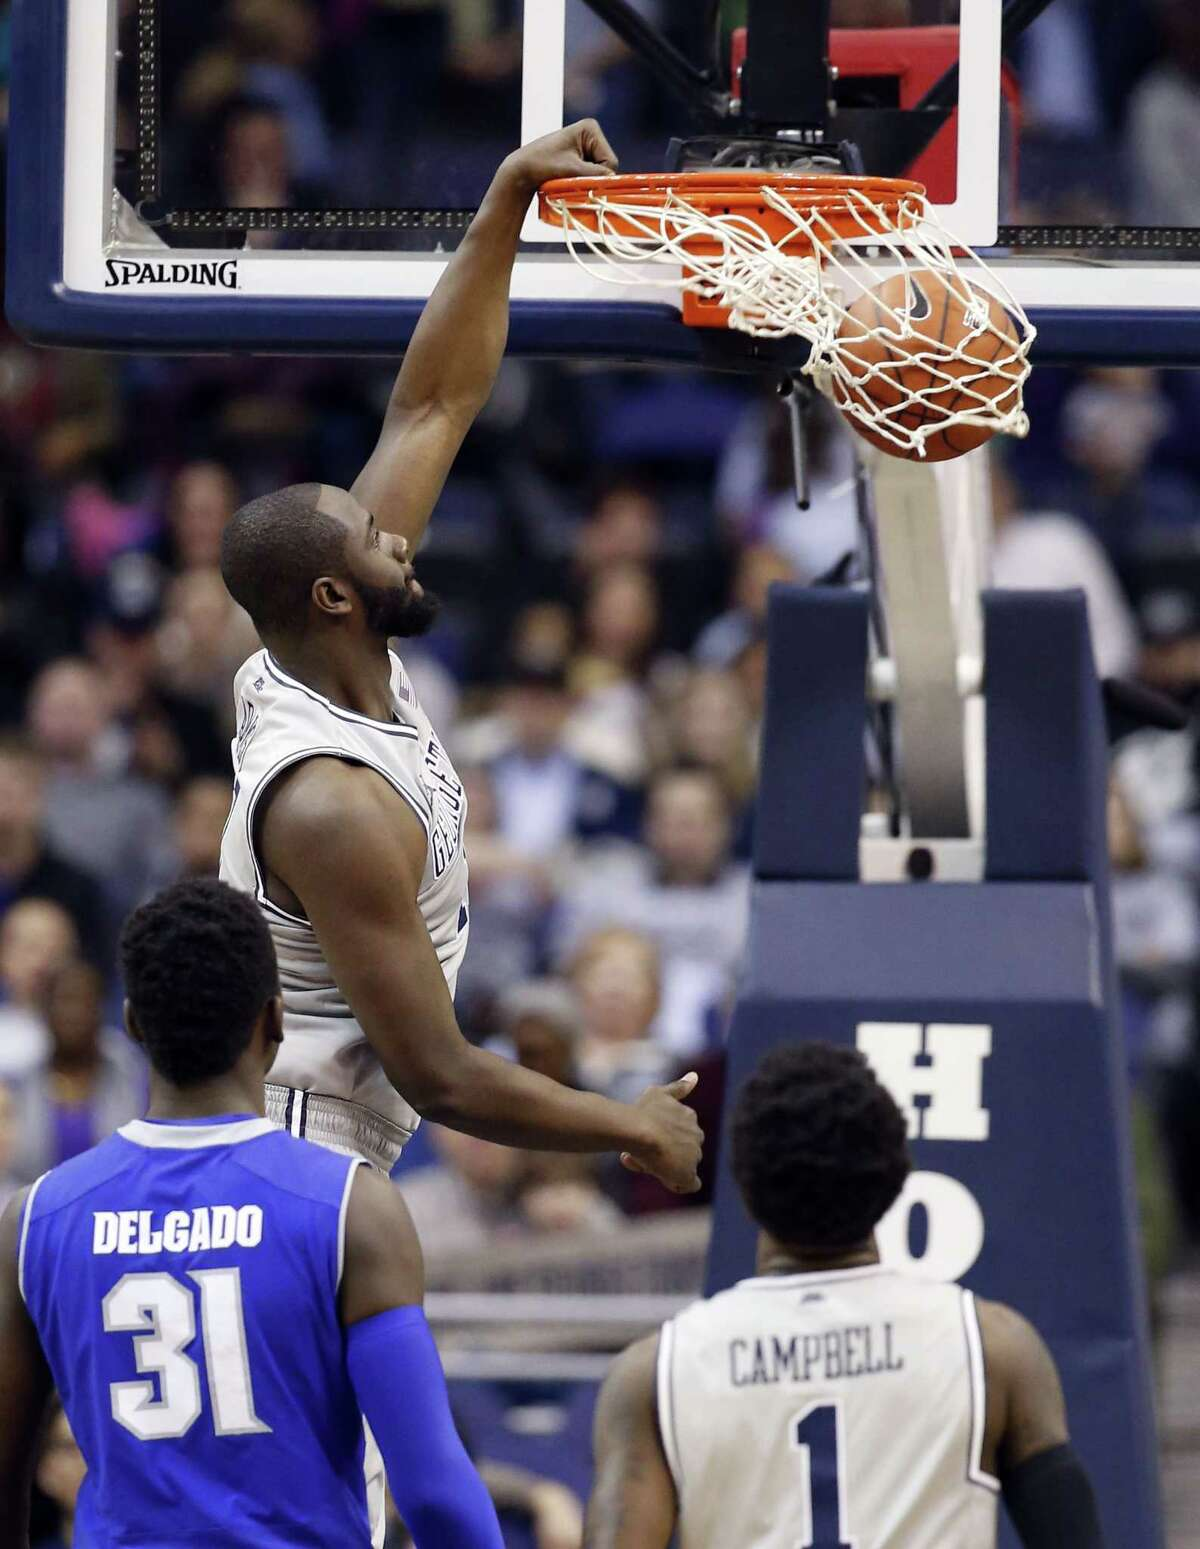 Georgetown center Tyler Adams dunks the ball against Seton Hall on Saturday in Washington. Adams started, and hasn't played in a game since 2011, sidelined because of a heart ailment.